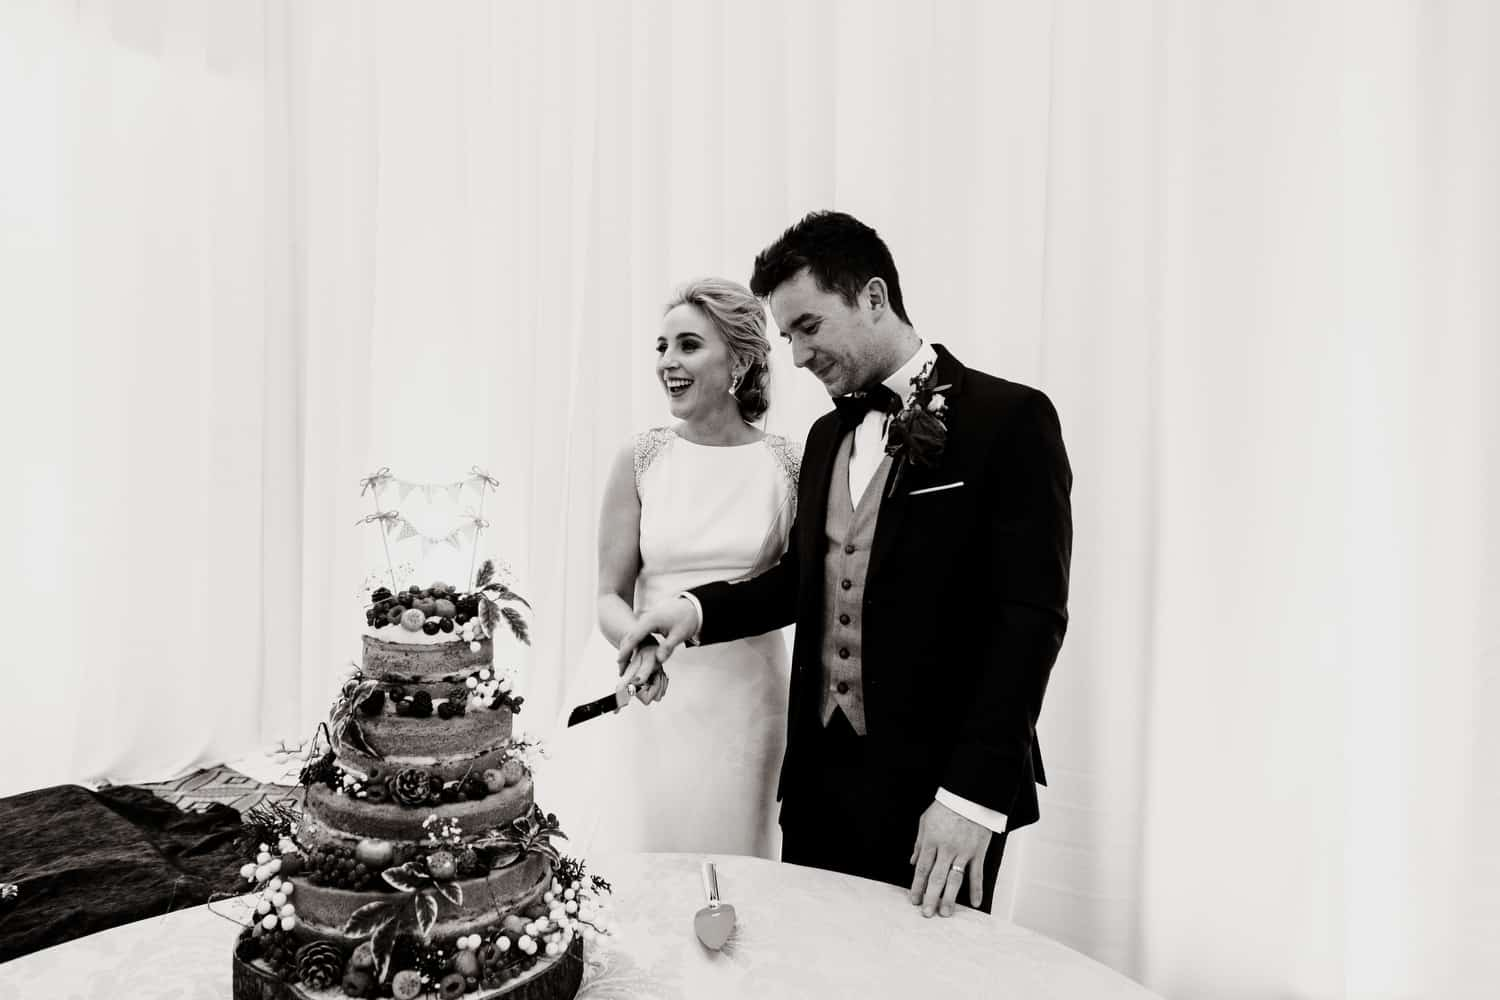 candid photograph of bride and groom cutting cake